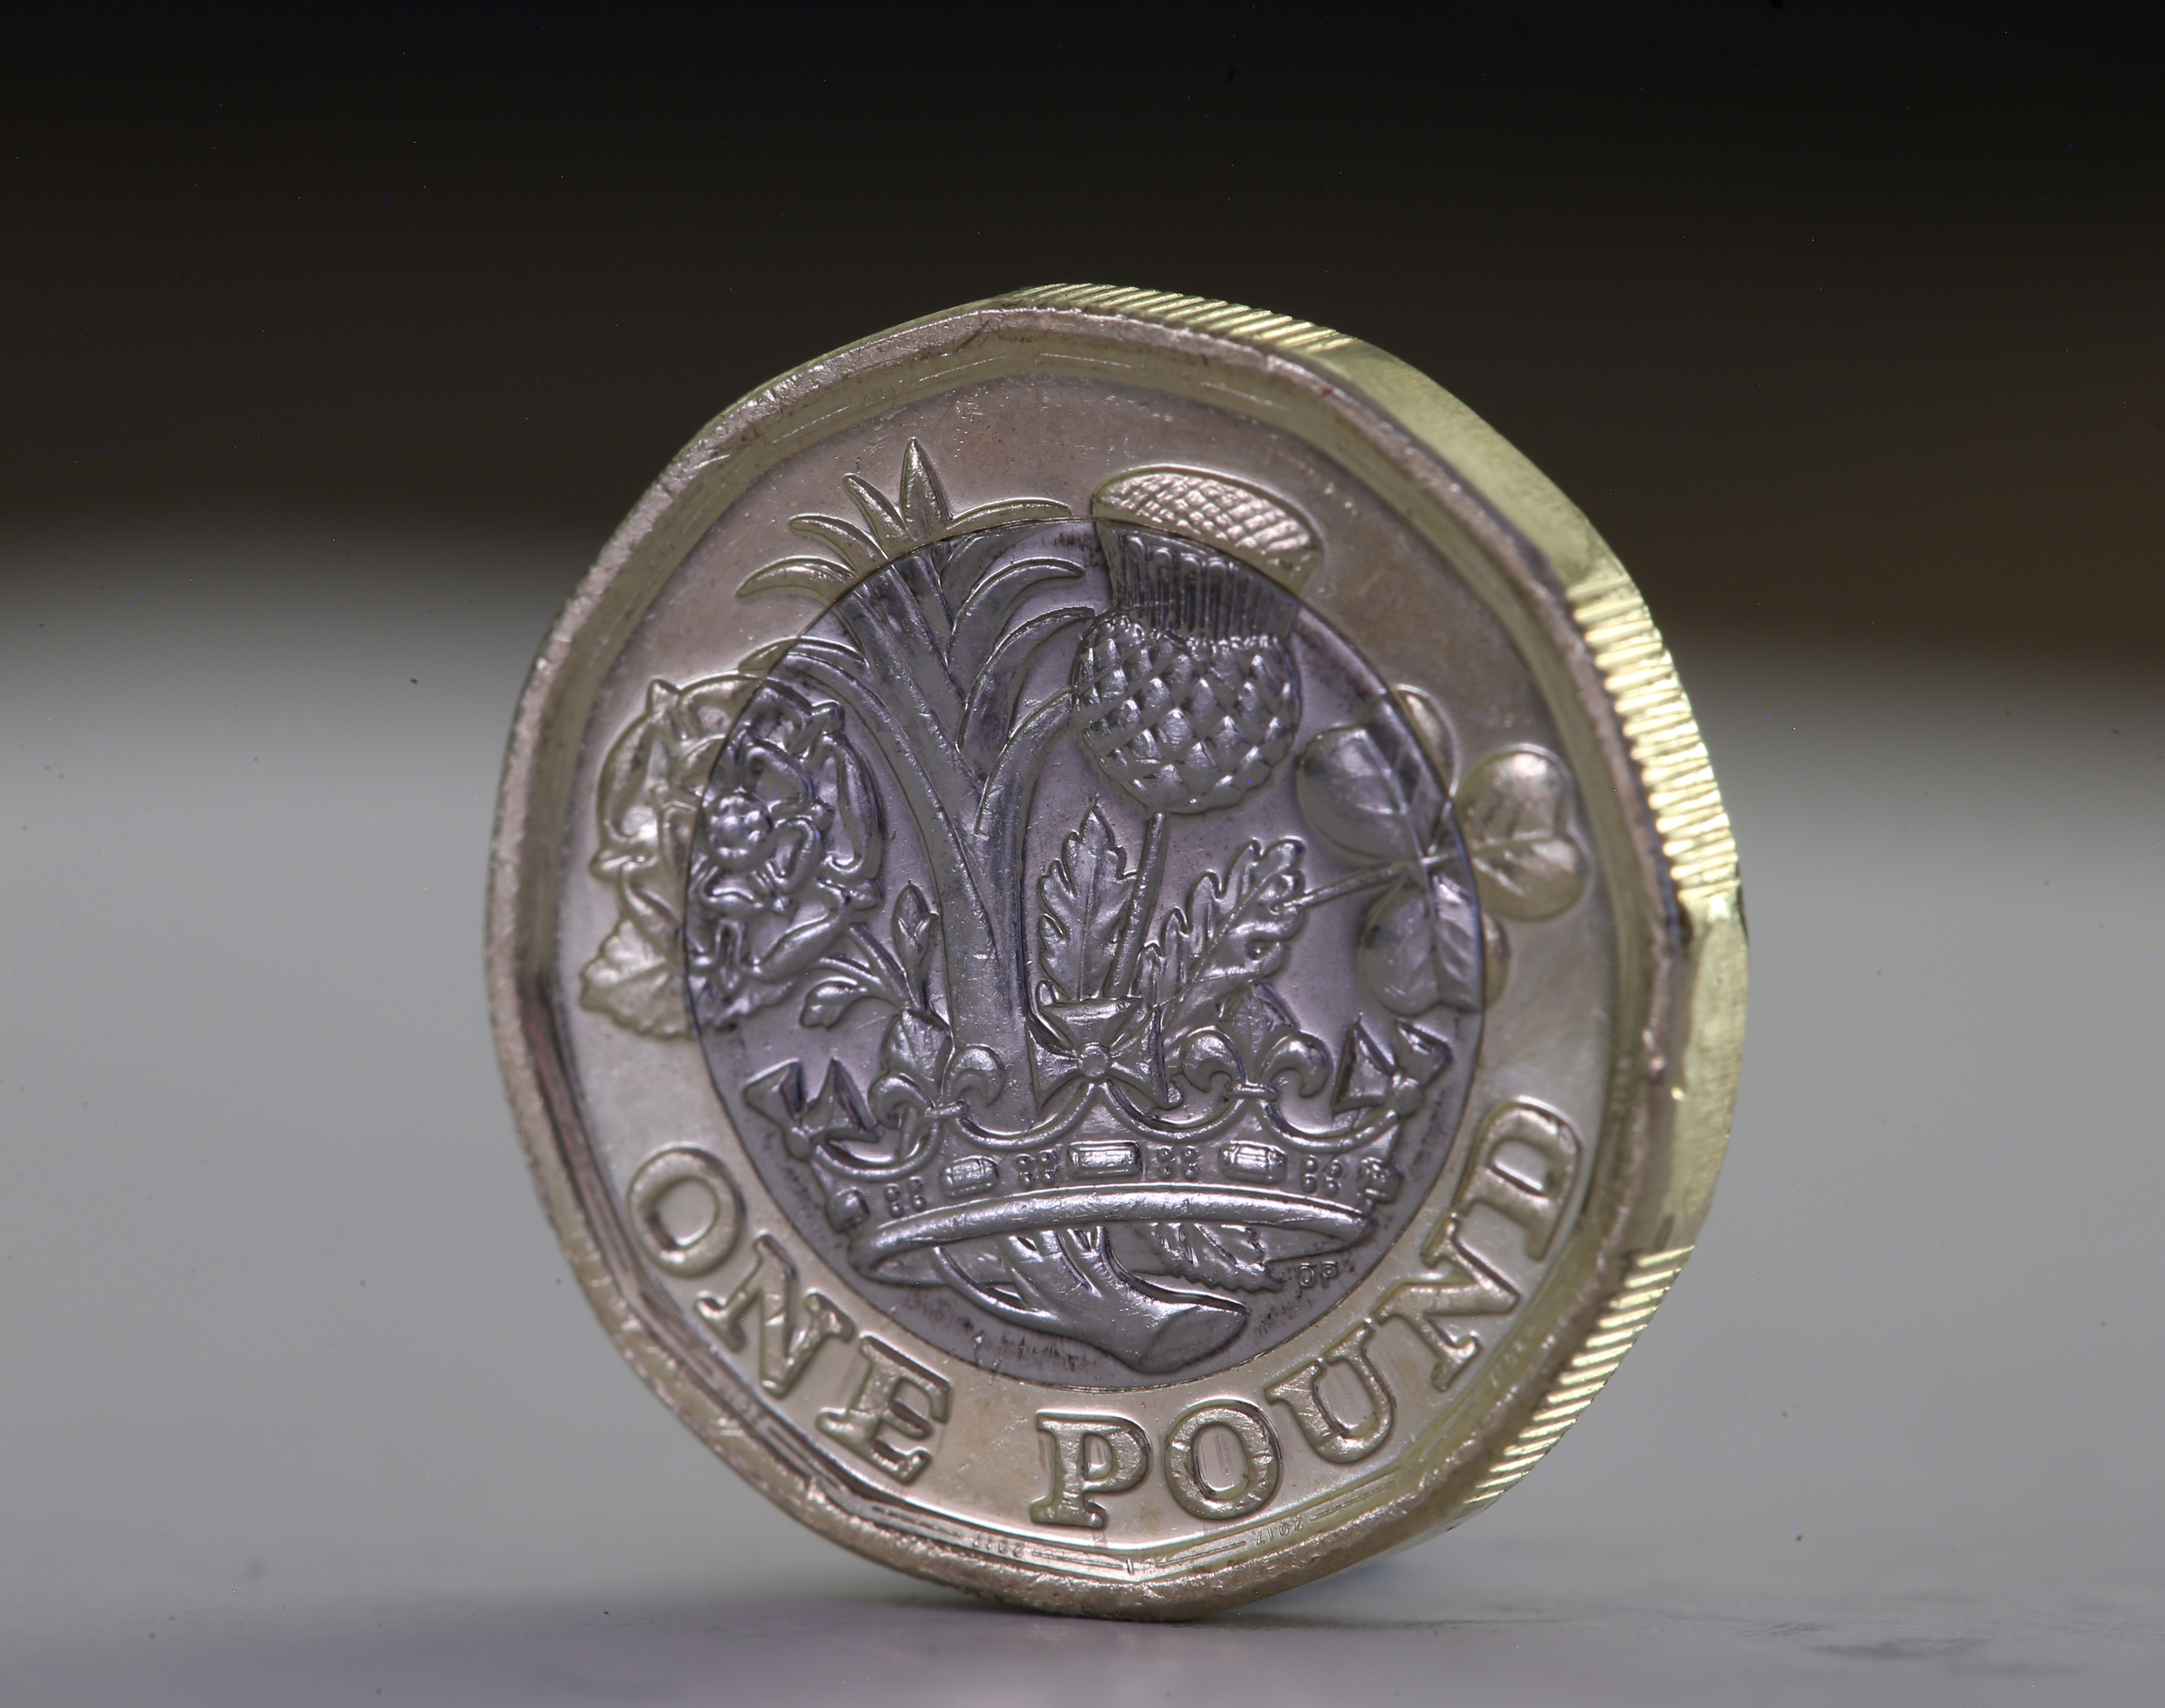 A new one pound coin.